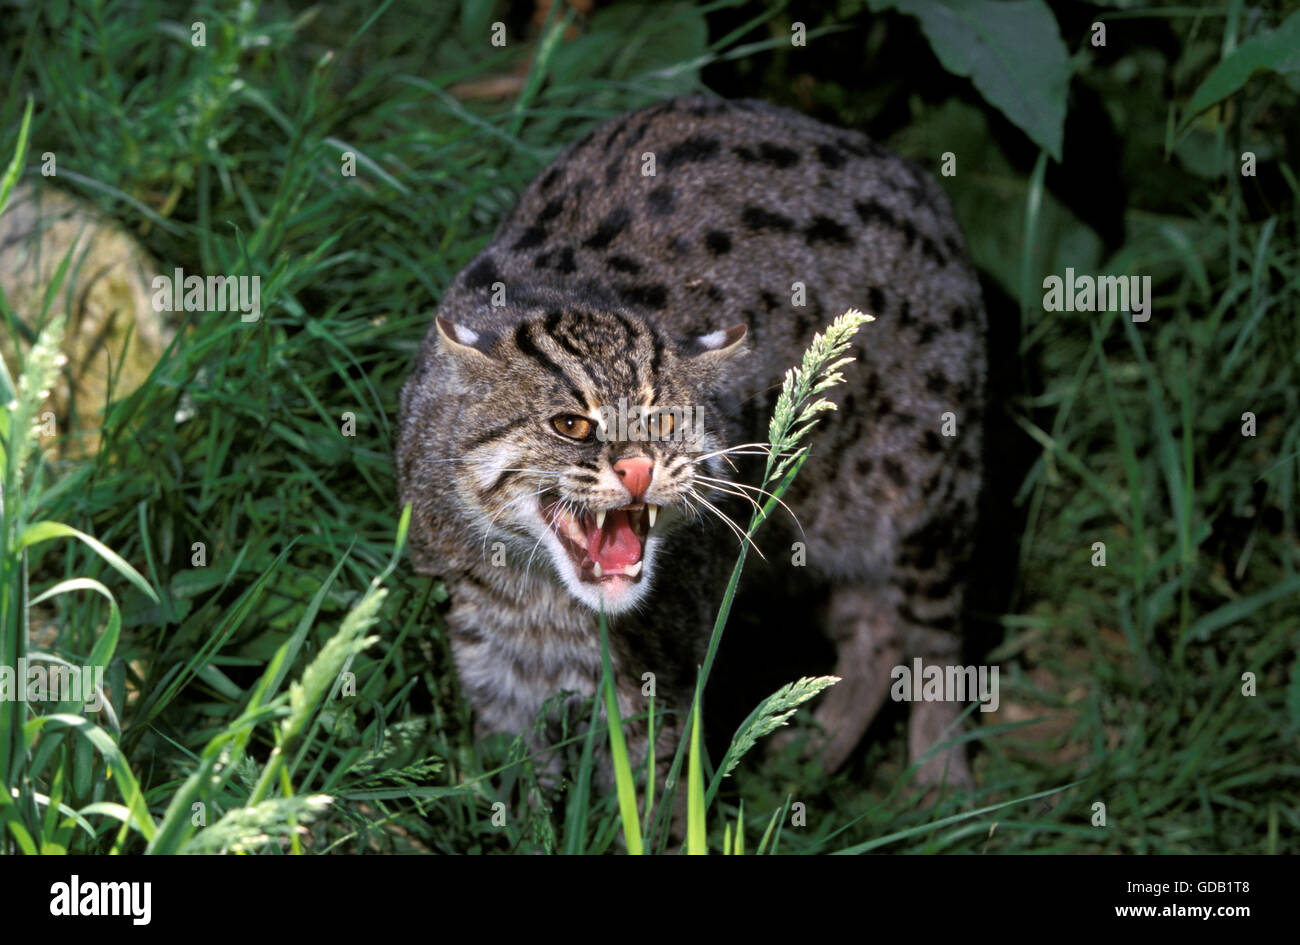 Fishing Cat, prionailurus viverrinus, Adult Snarling - Stock Image